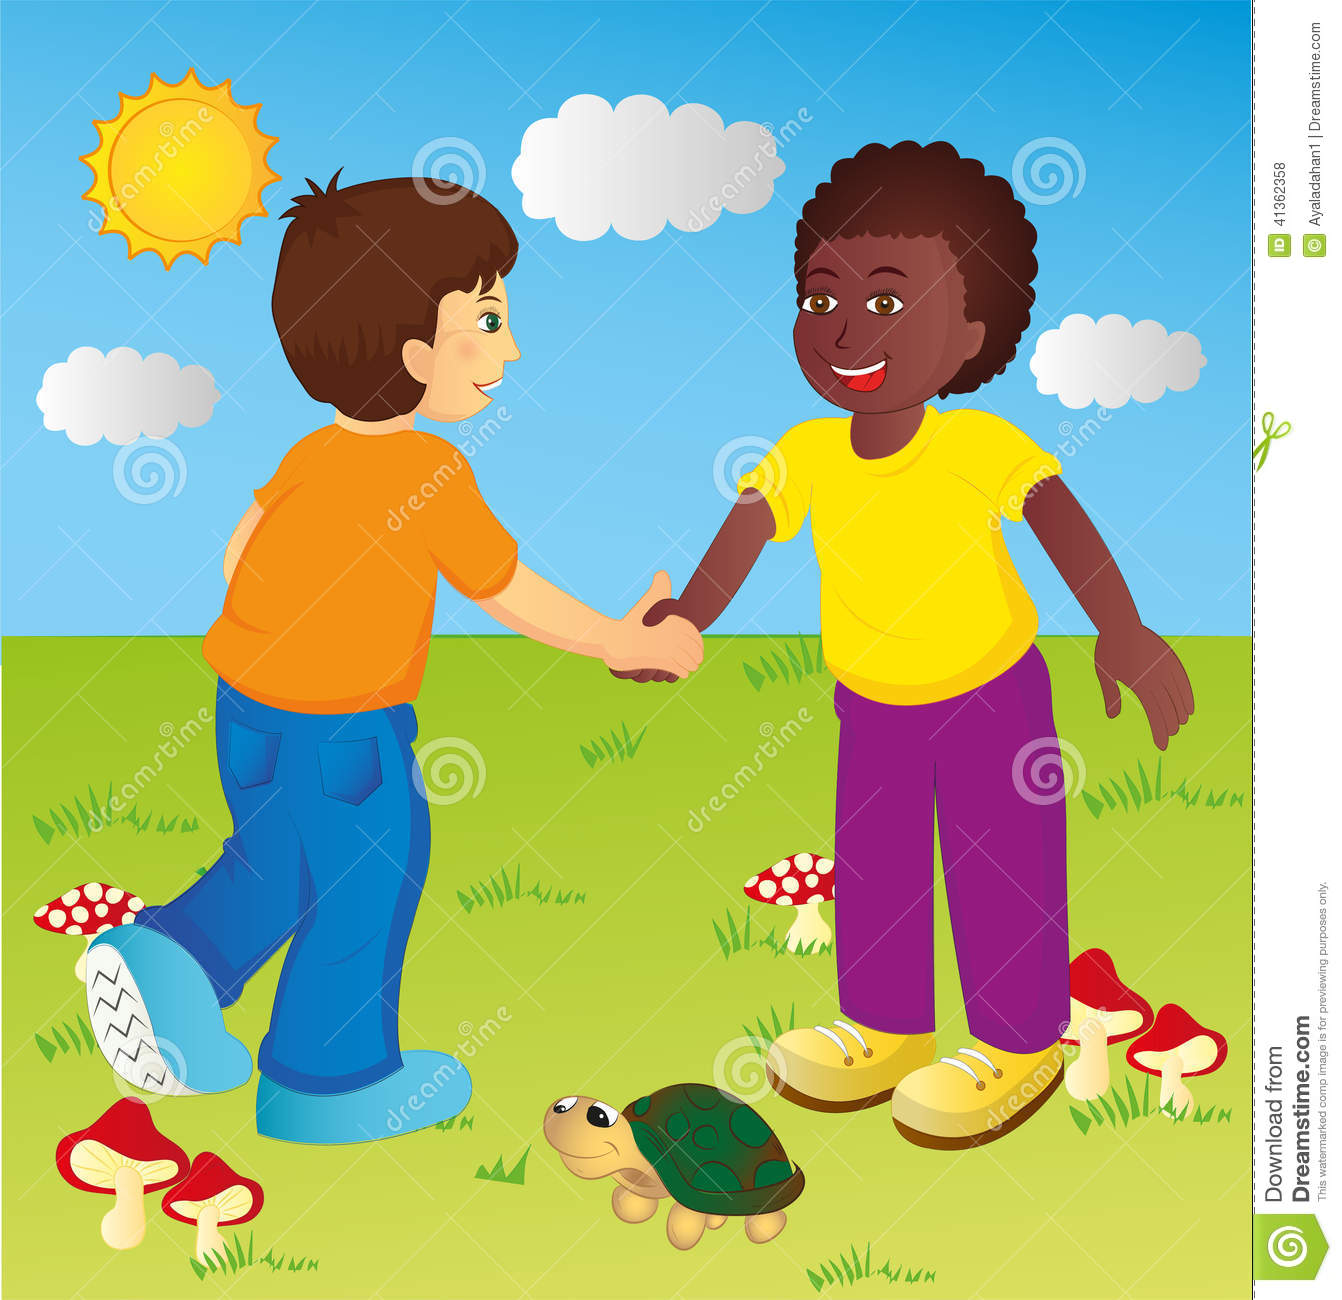 Children Stock Vector - Image: 41362358